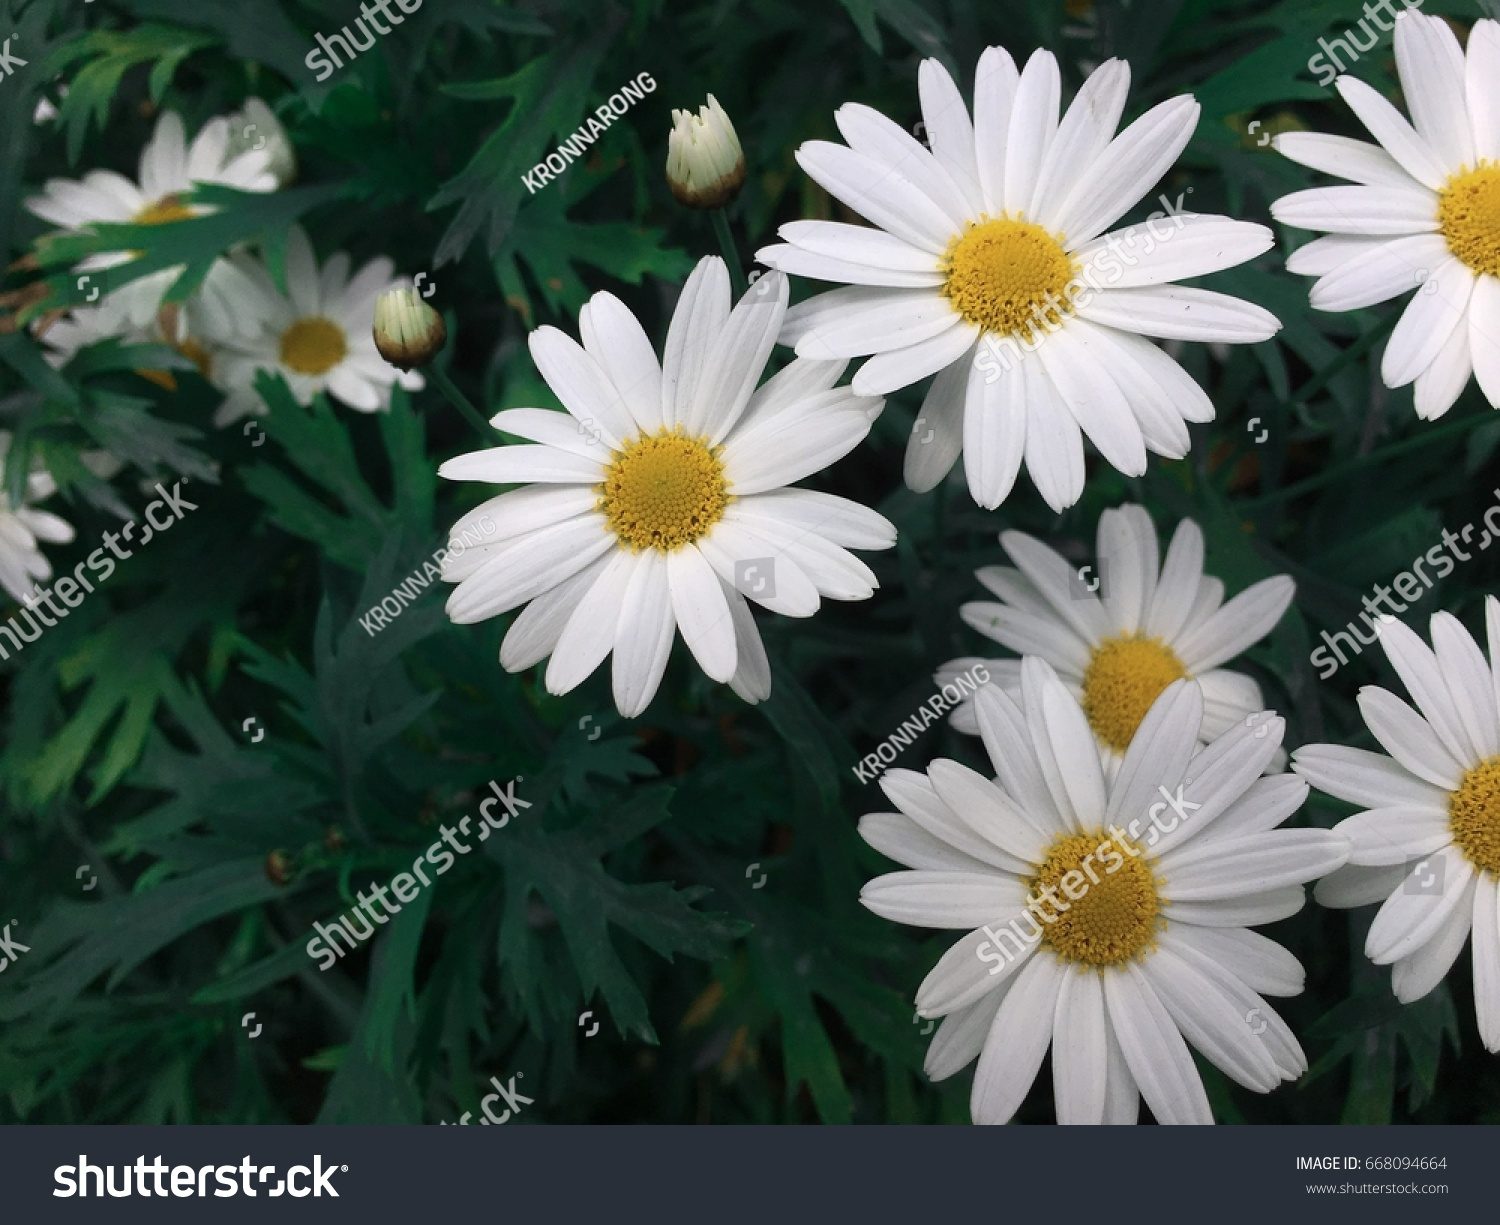 White Flowers Aster Stock Photo Royalty Free 668094664 Shutterstock